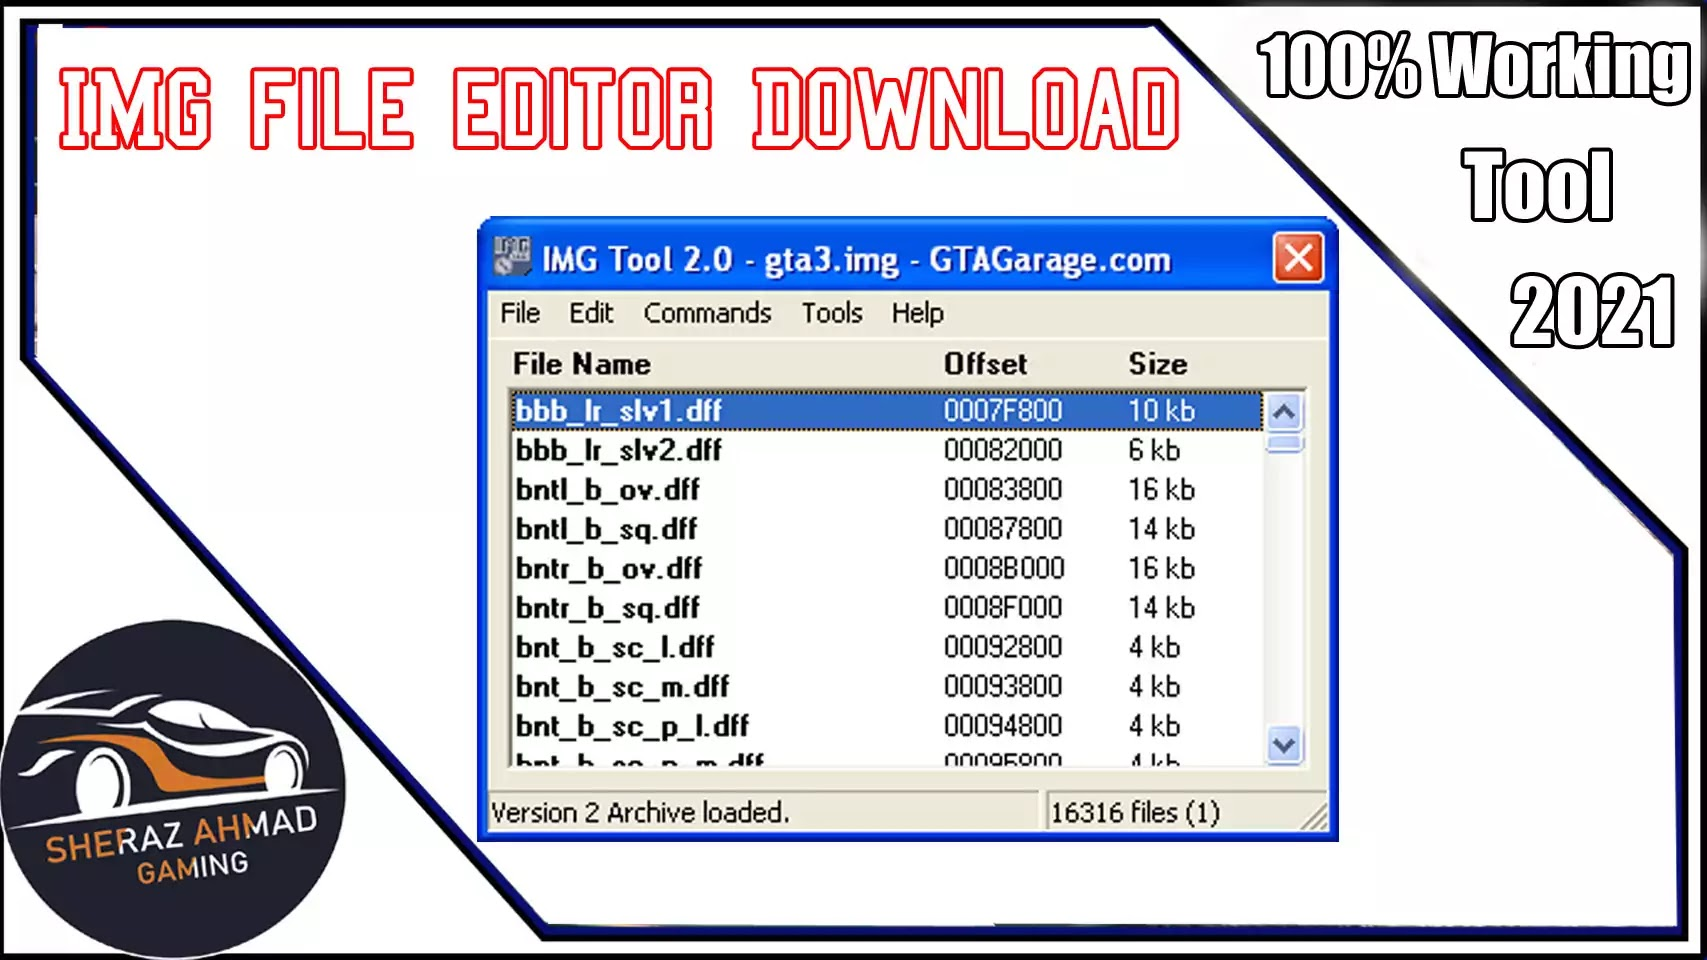 IMG File Editor Download For Pc,img tool for windows, img tool gta vice city, img tool 3.0 download free, img tool for gta 4, download img tool gta san pc, img tool bully, img tool failed to set data for, how to use gta img tool android, img tool for pc free download, image tool download, img tool for windows, img file editor download, img tool for gta 4, usb image tool 1.59 free download, image tool software, download img tool gta san pc,